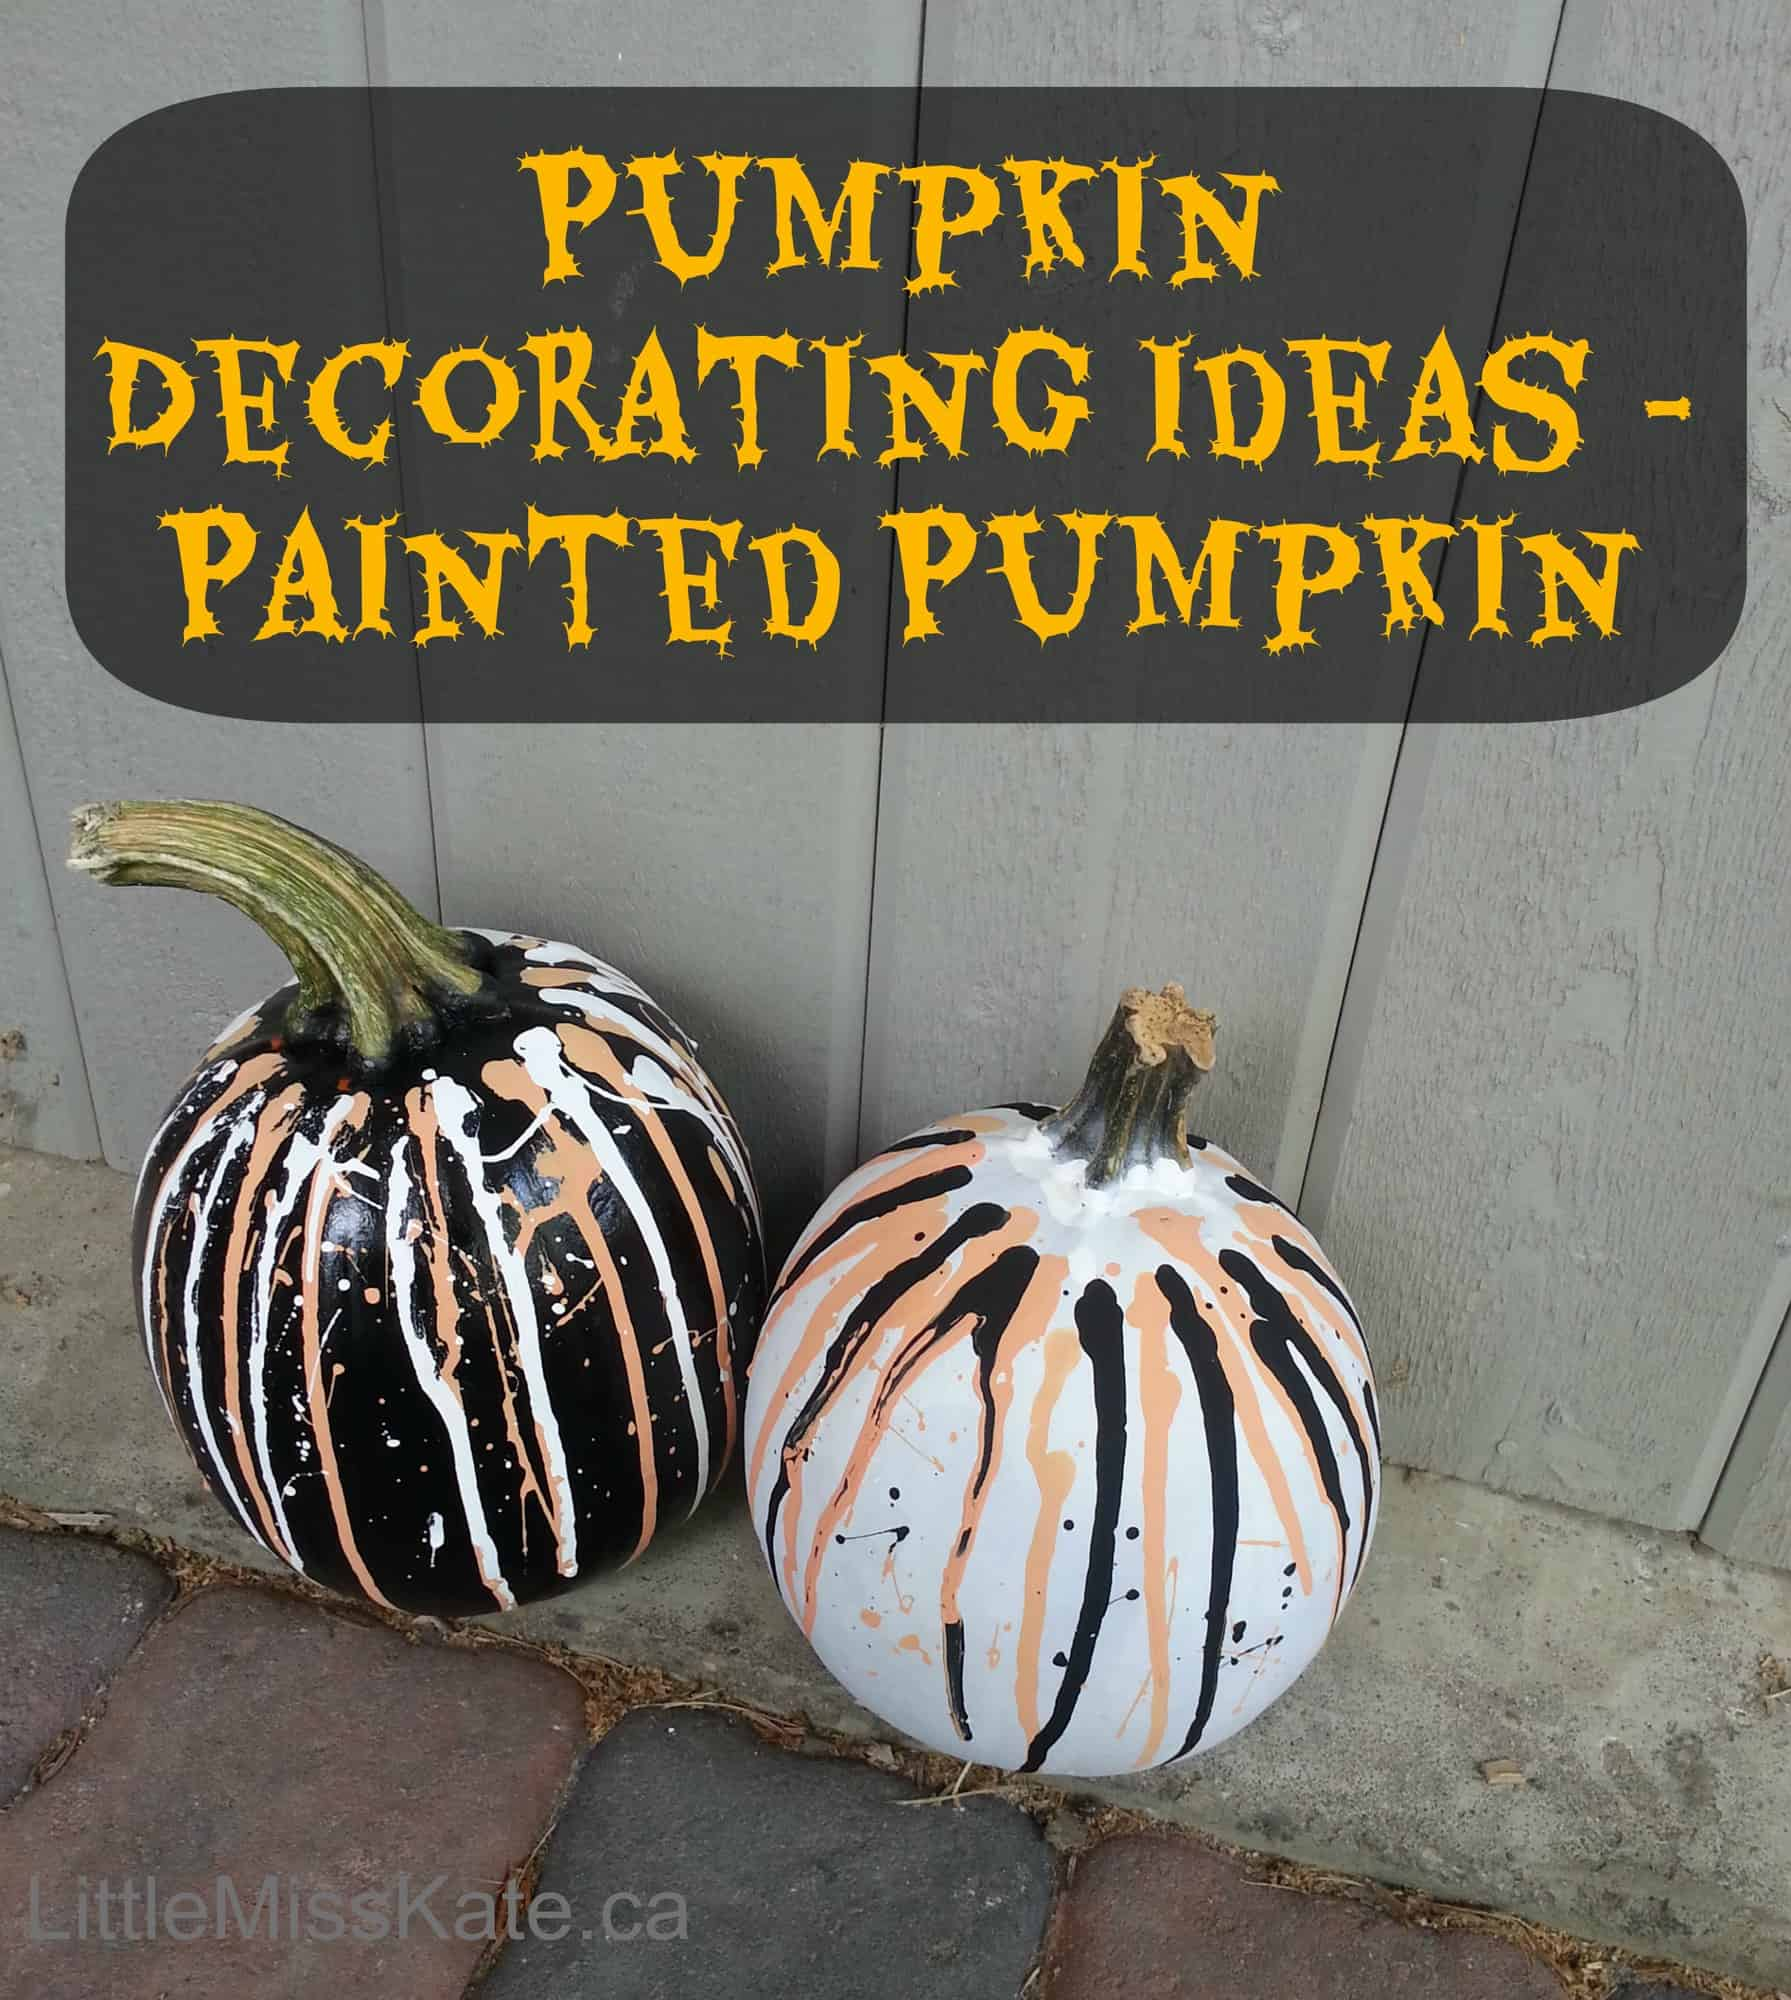 Pumpkin Decorating Ideas – Painted Pumpkins